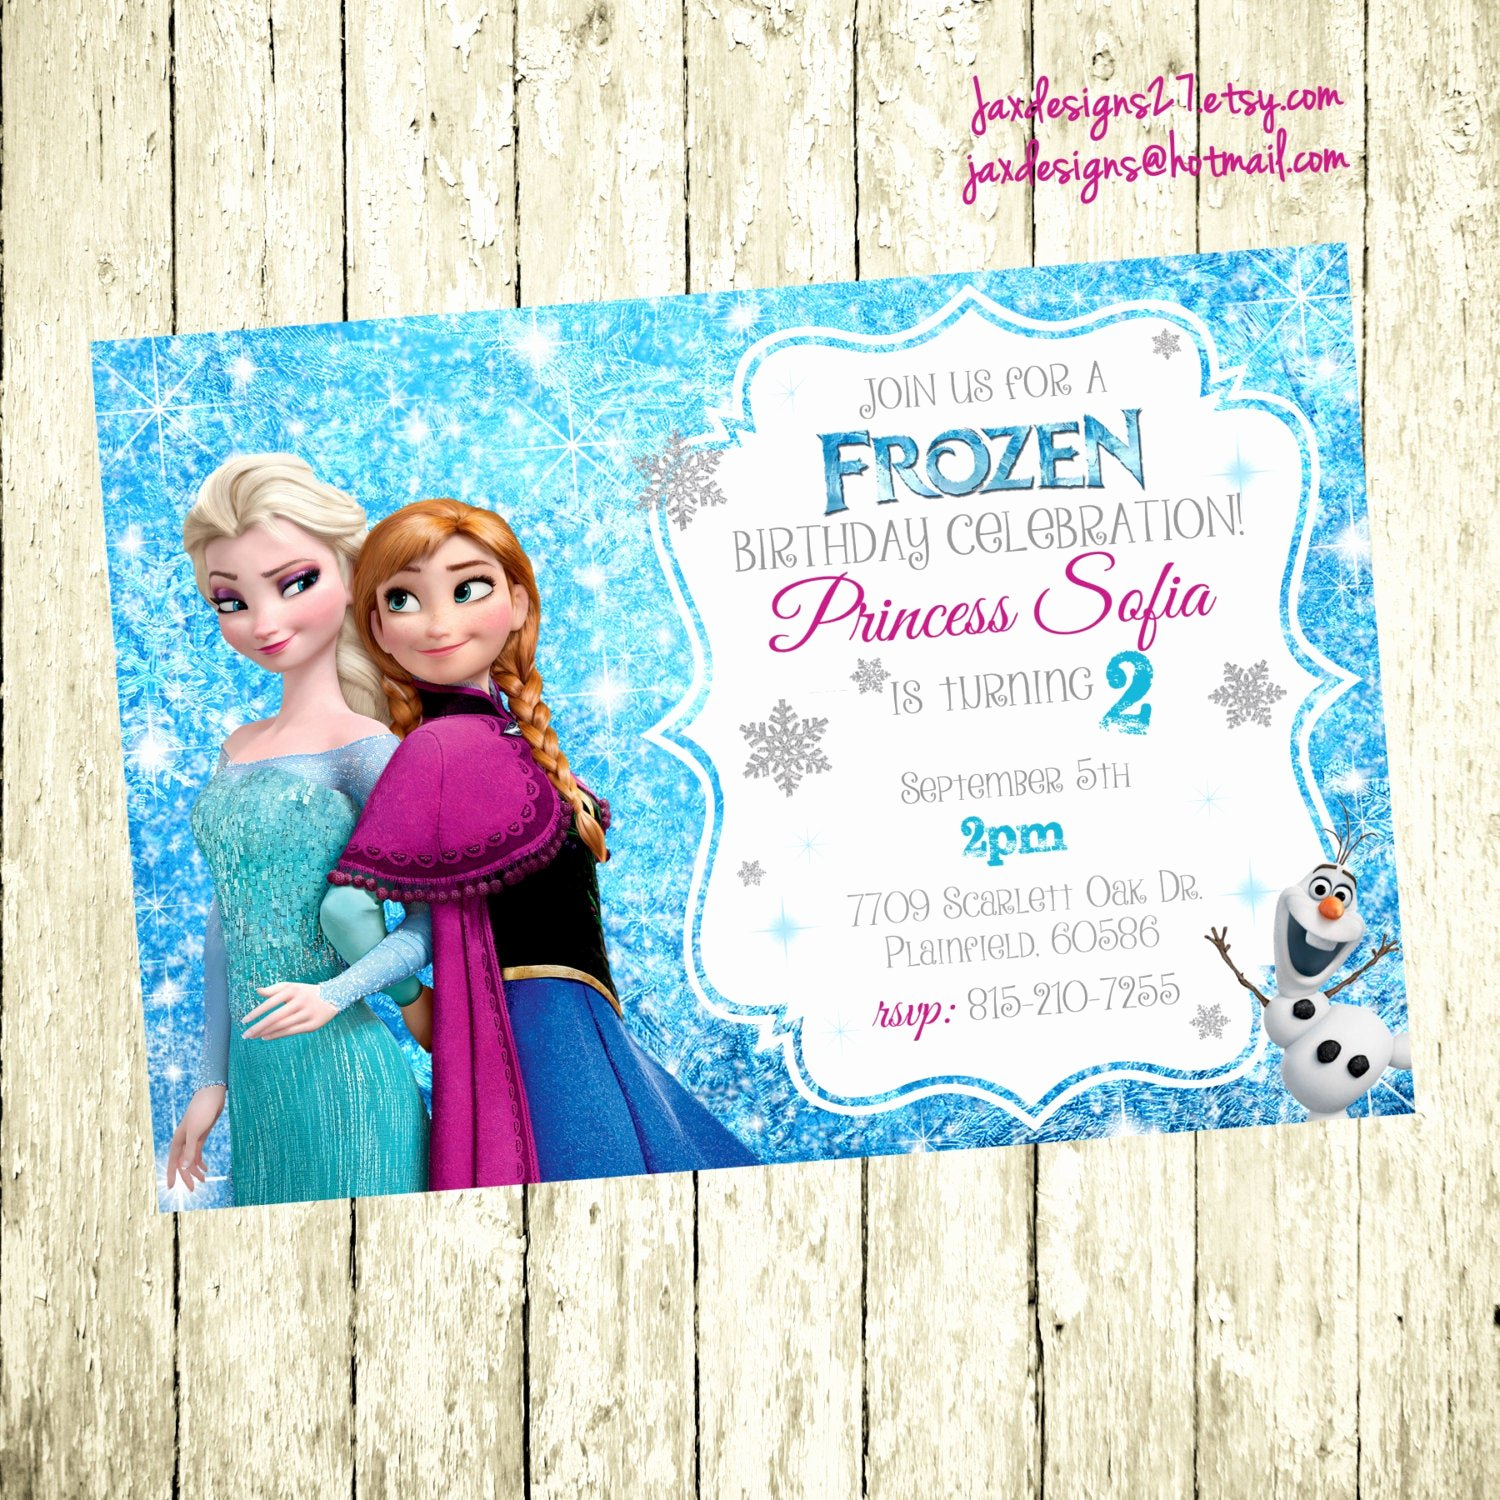 Frozen Bday Party Invitations Beautiful Frozen Birthday Invitation Frozen Birthday Party Frozen